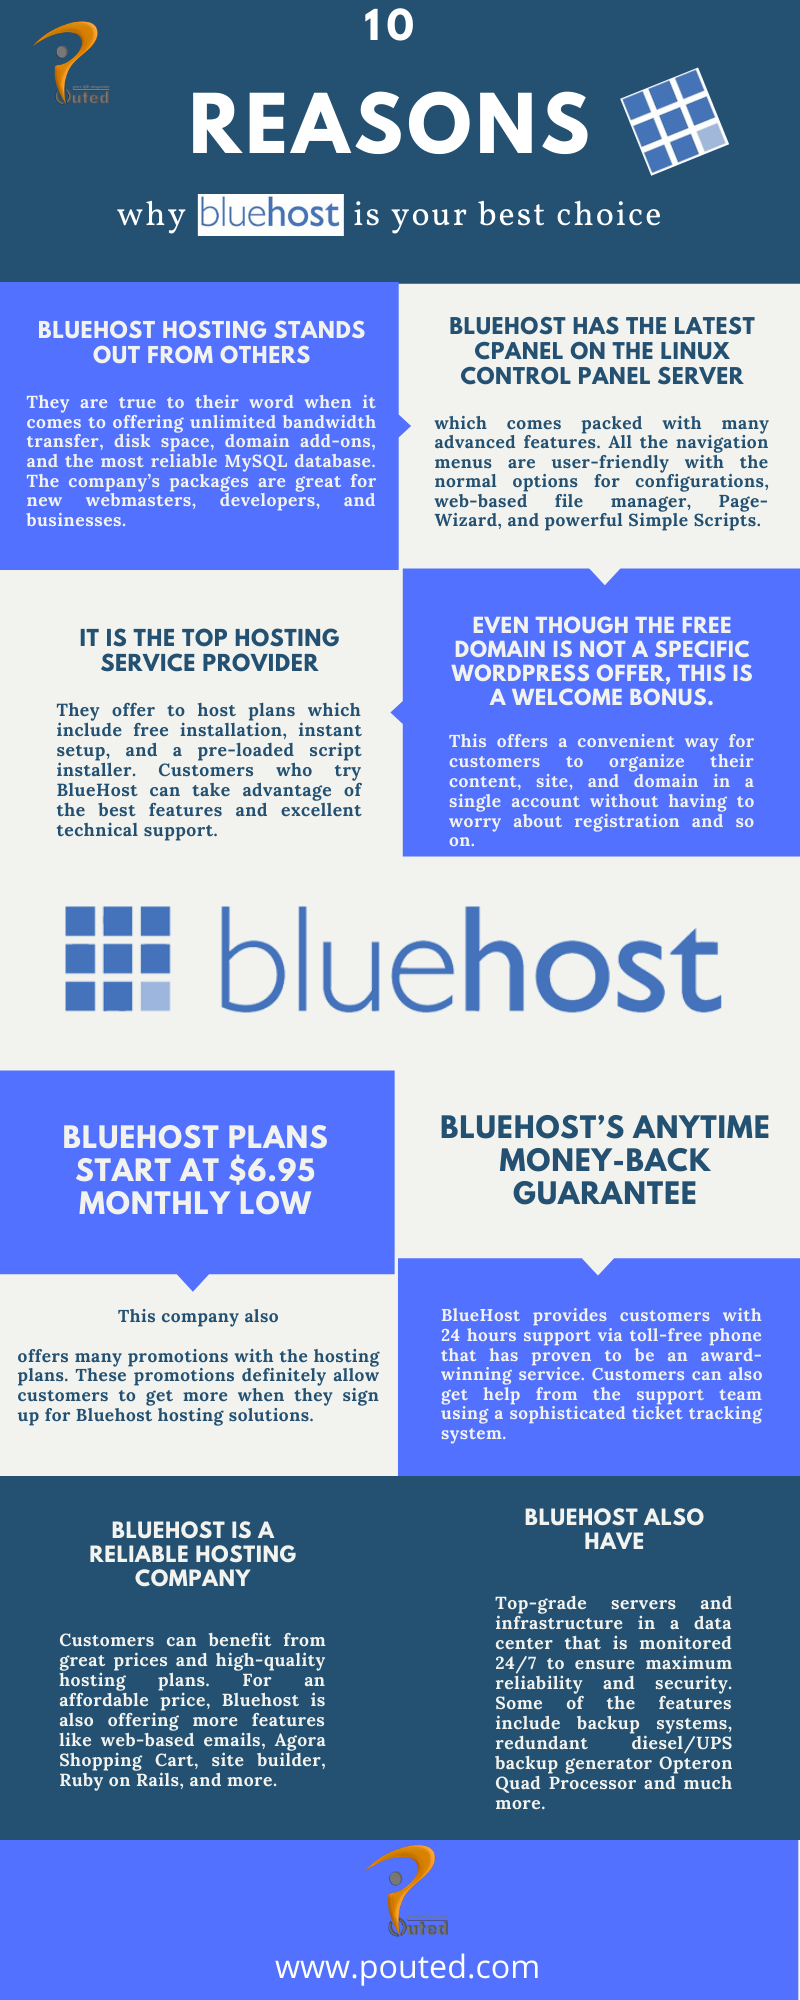 Bluehost_review Bluehost Review 2021: Cons & Pros and Hidden Fees To Know